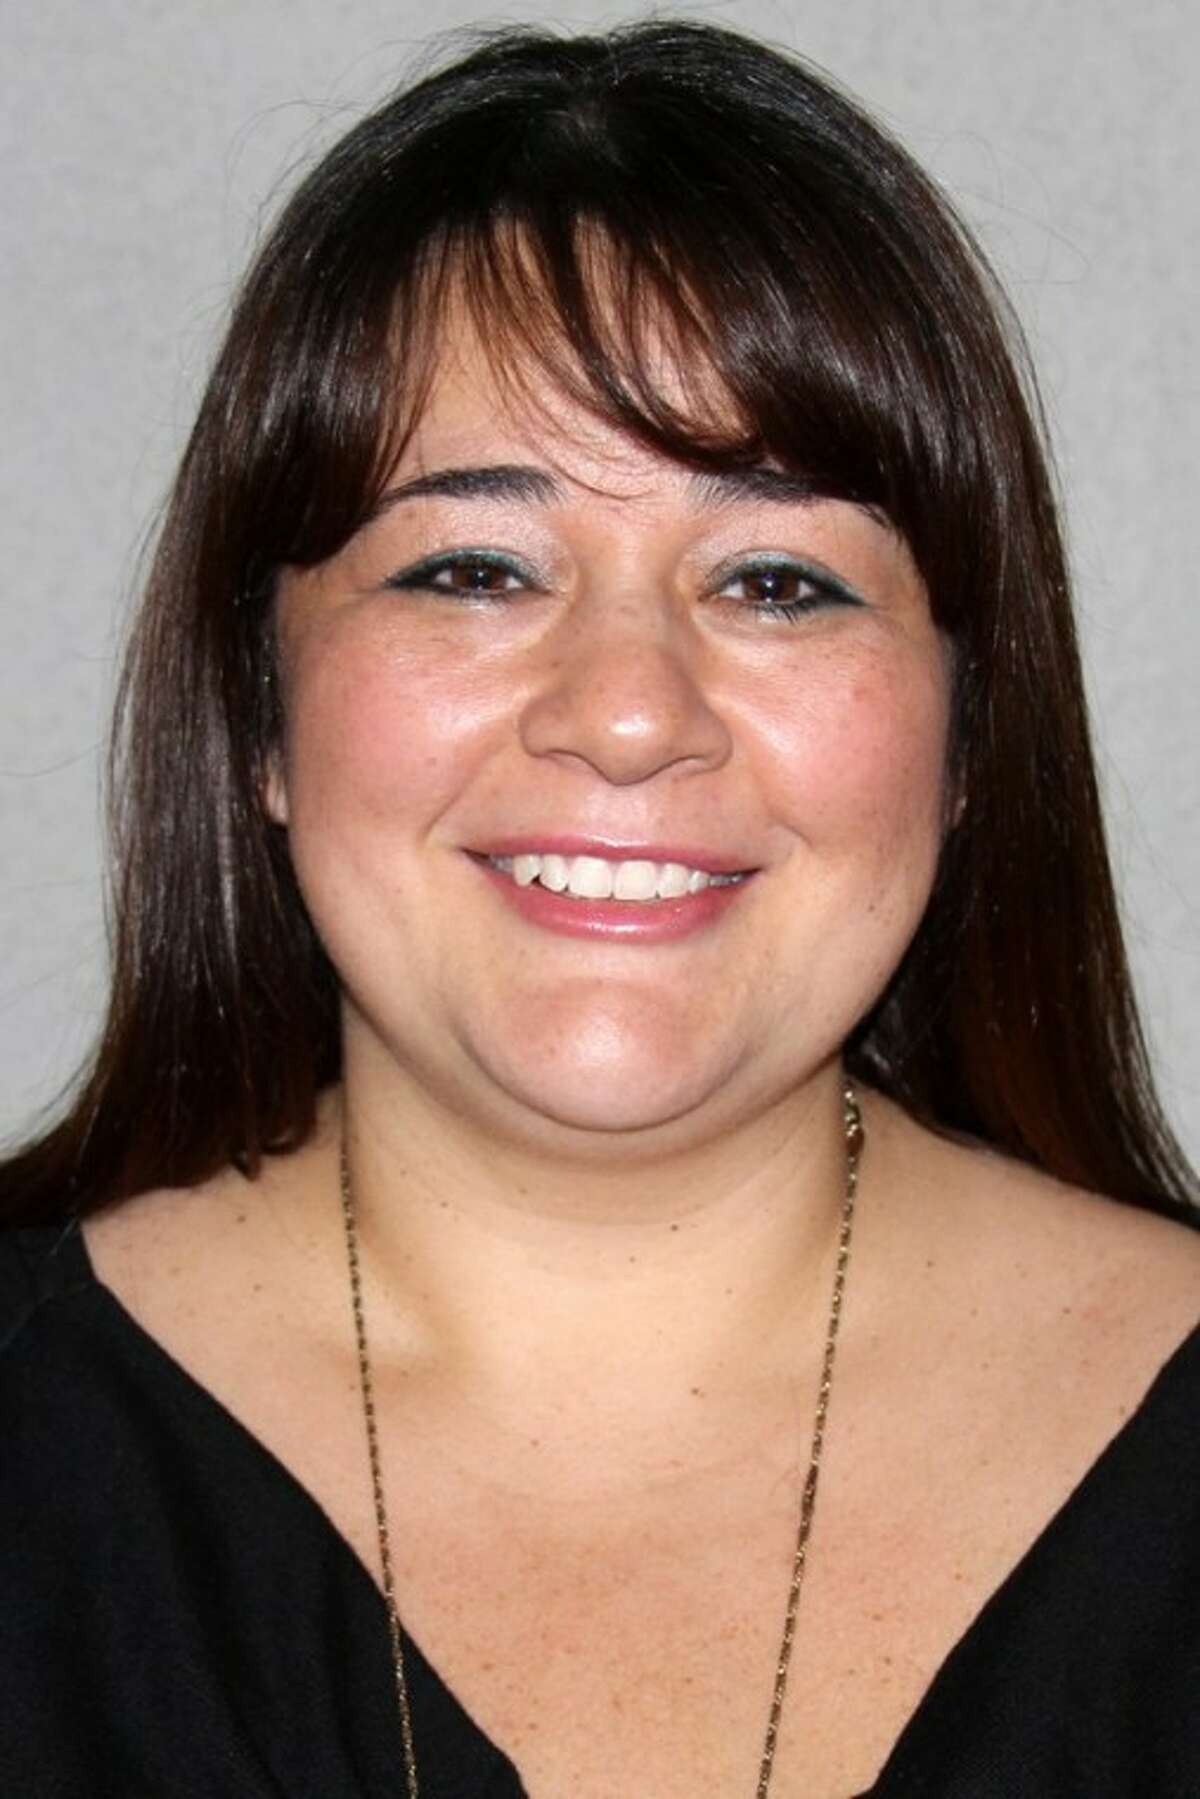 Wendy Wiseburn, the new principal at Frazier Elementary